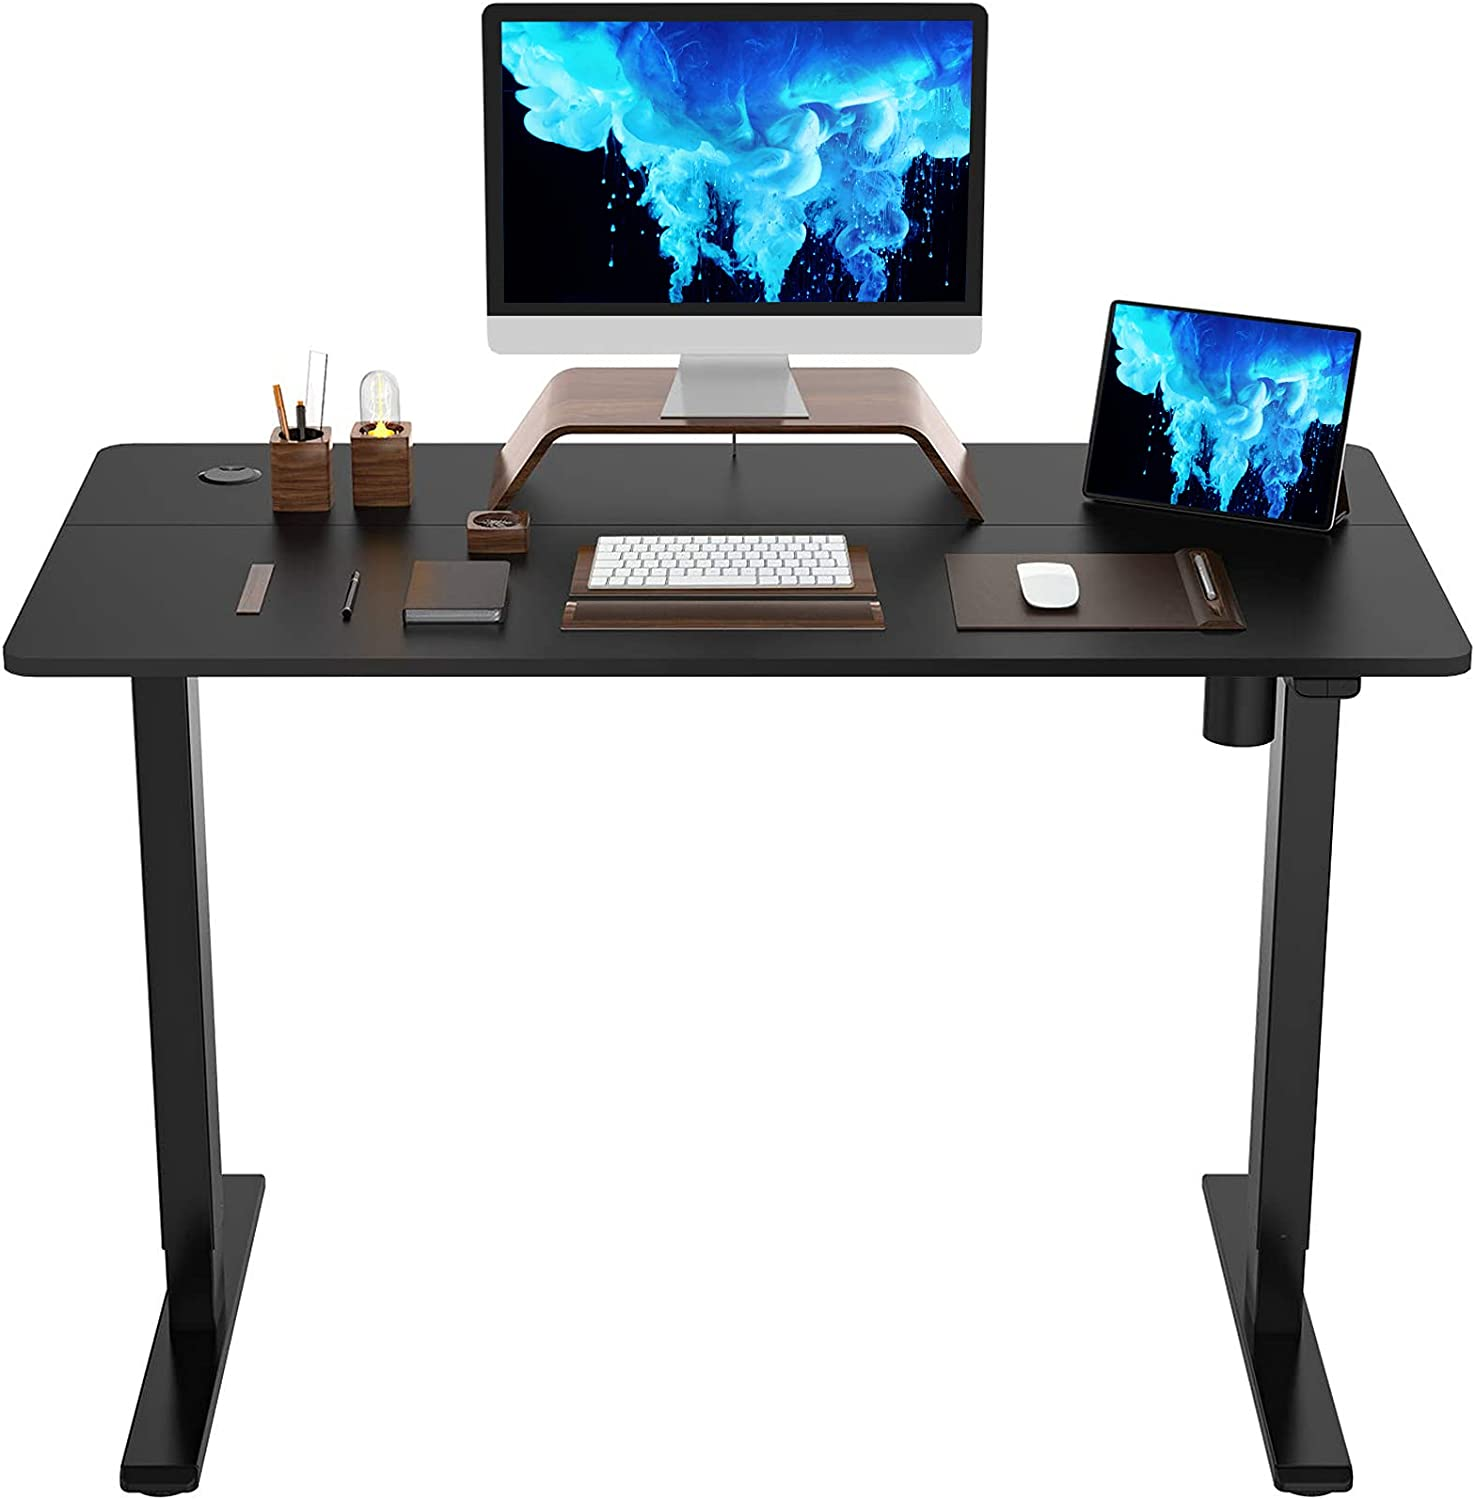 FlexiSpot Adjustable Height Electric Sit Stand Desk  $190  Coupon